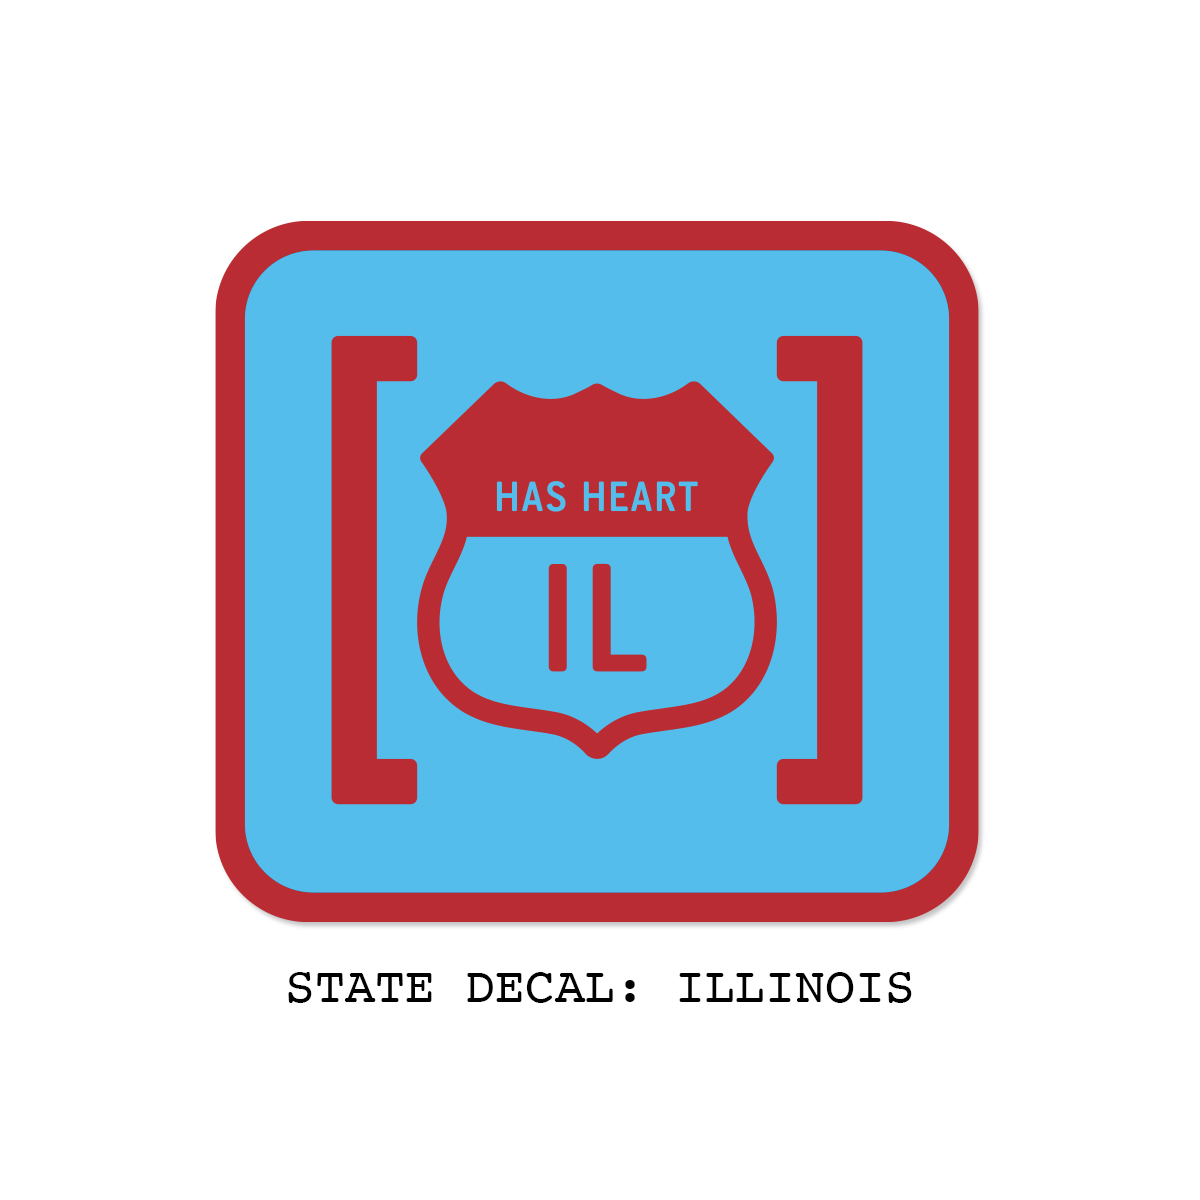 hasheart-statedecal-IL